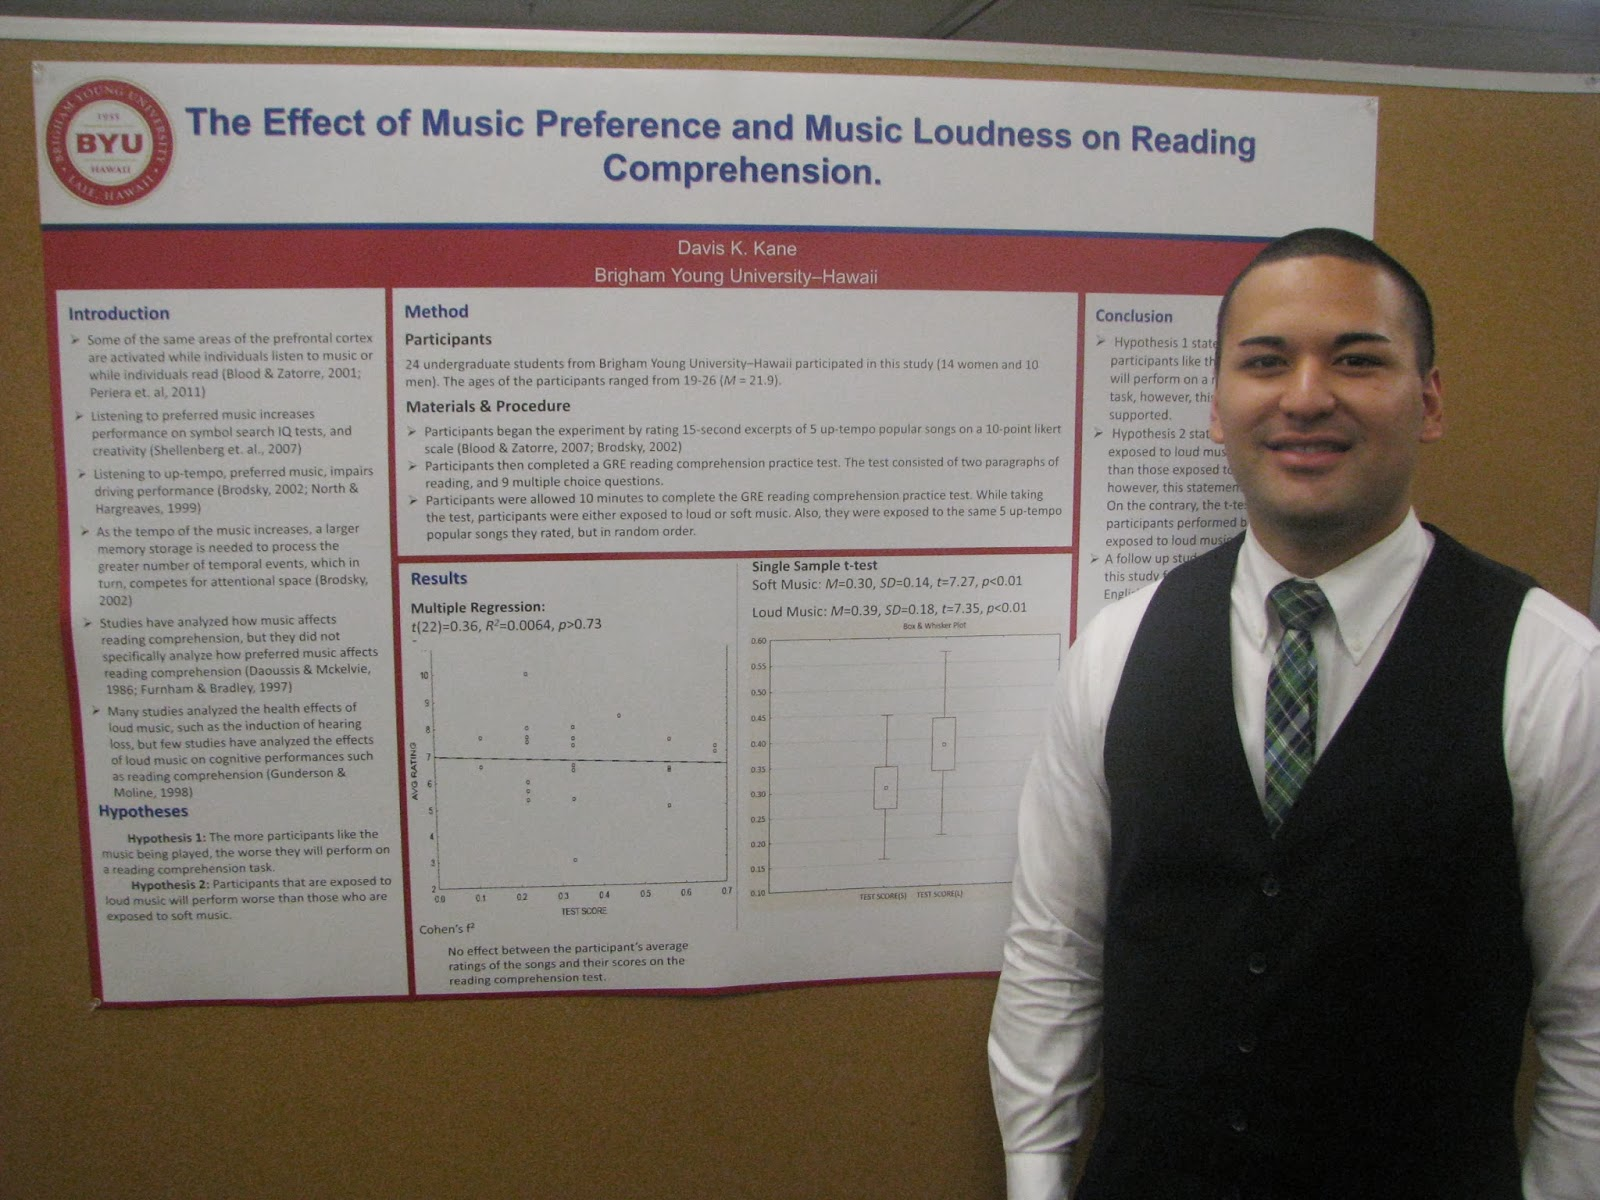 experiment on effect of music on driving performance /continue reading does music make you an unsafe driver whether music to music had no ill effect on driving driving performance.